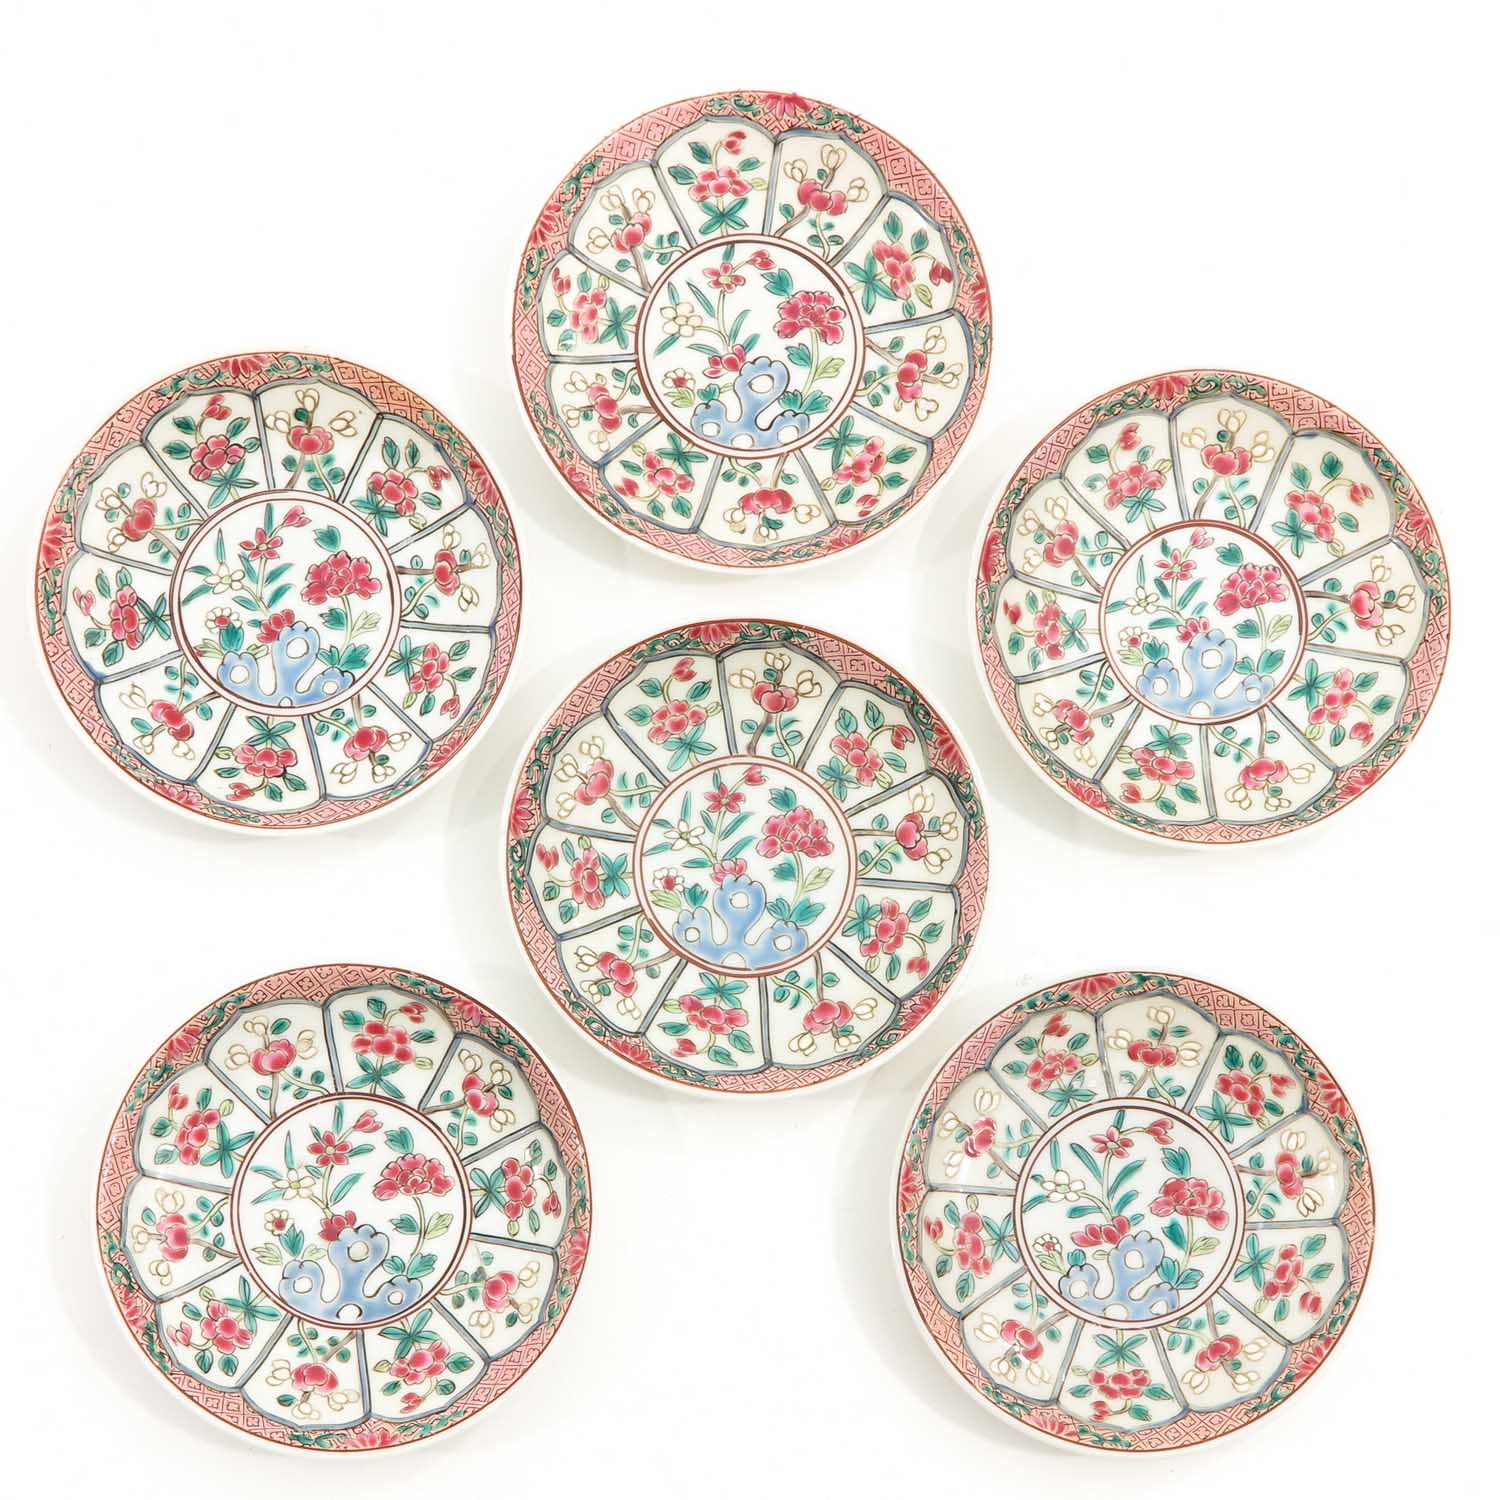 A Collection of Cups and Saucers - Image 7 of 10